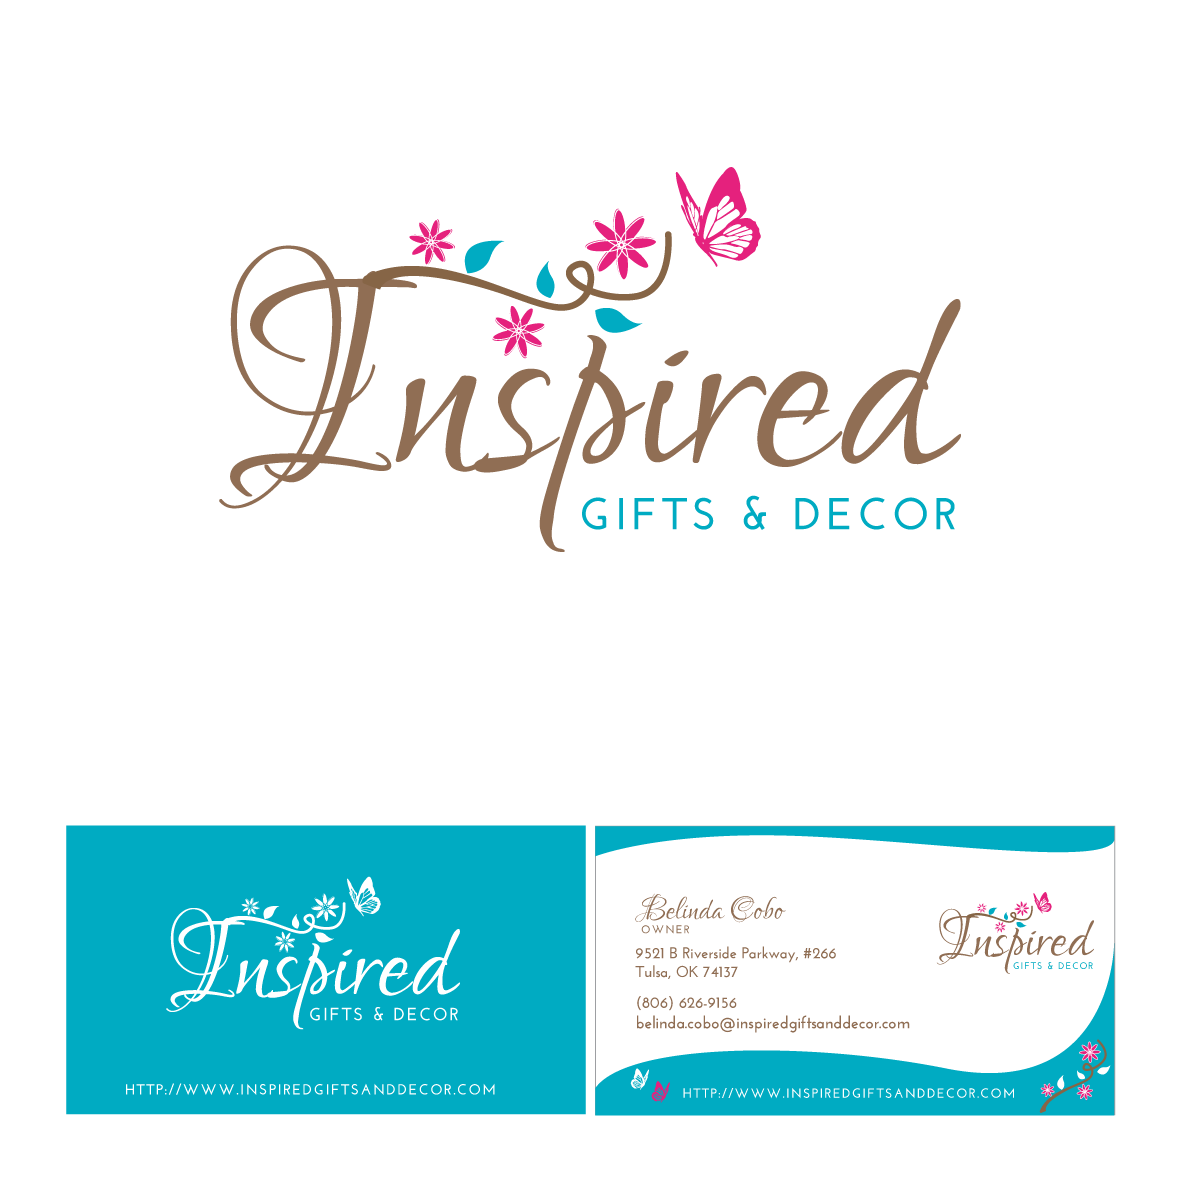 New logo and business card wanted for Inspired Gifts & Decor Logo ...